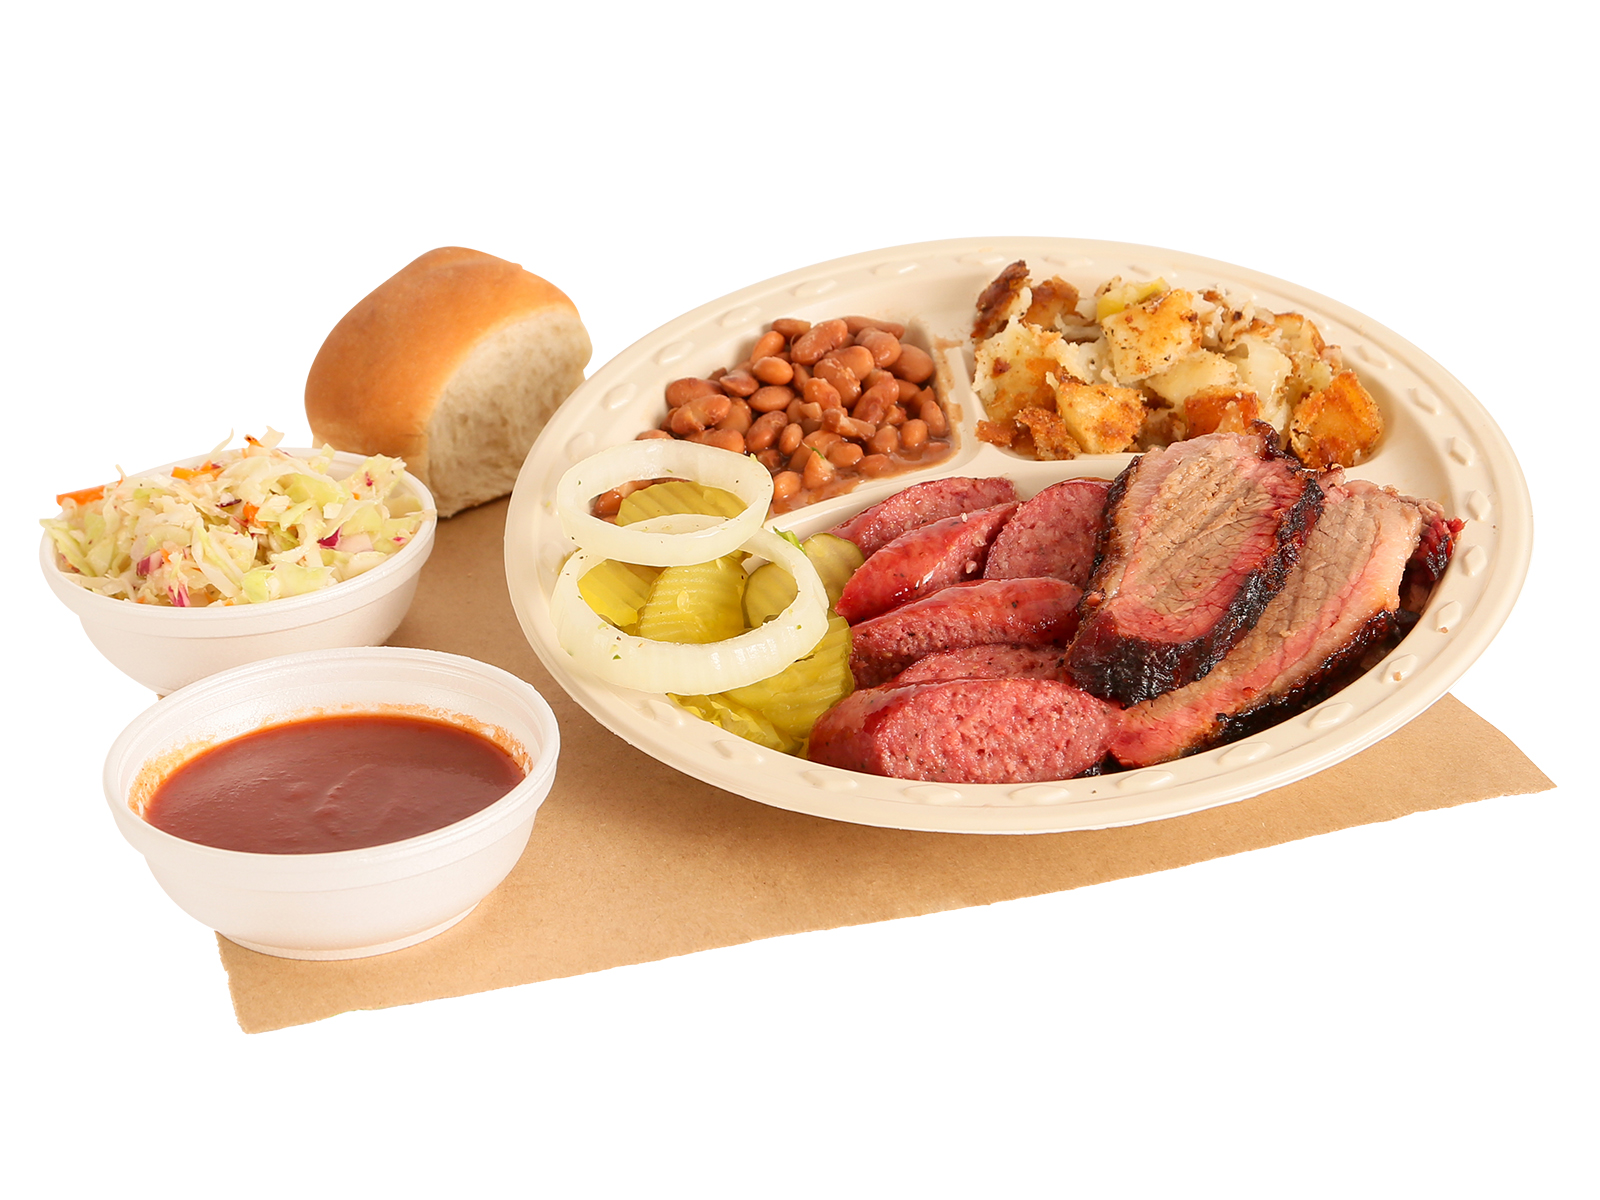 BBQ Rancher Plate served with brisket, sausage, pinto beans, hashbrowns, coleslaw, dinner roll, BBQ sauce, pickles & onions